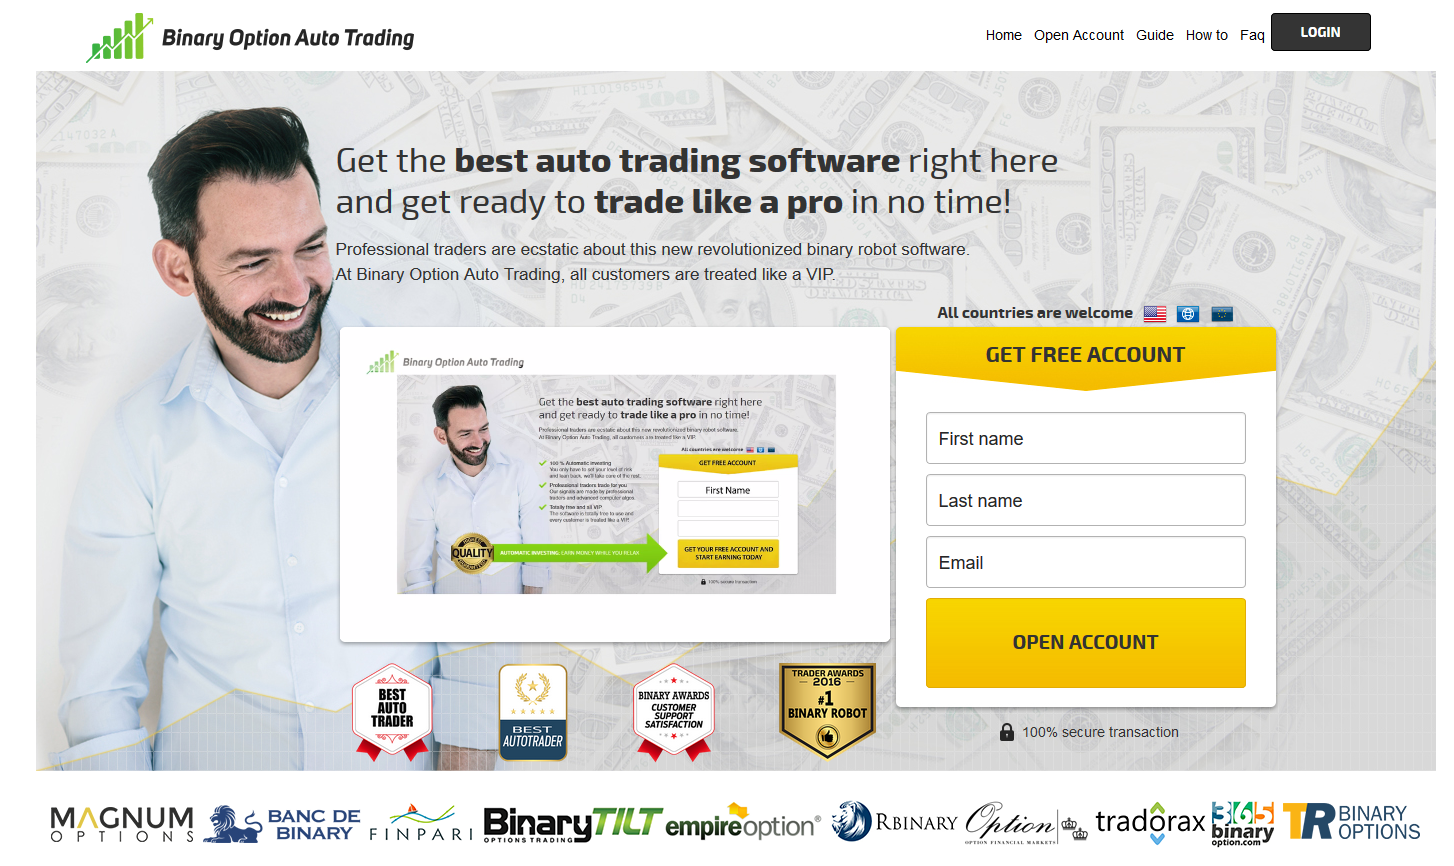 binary option auto trading main page